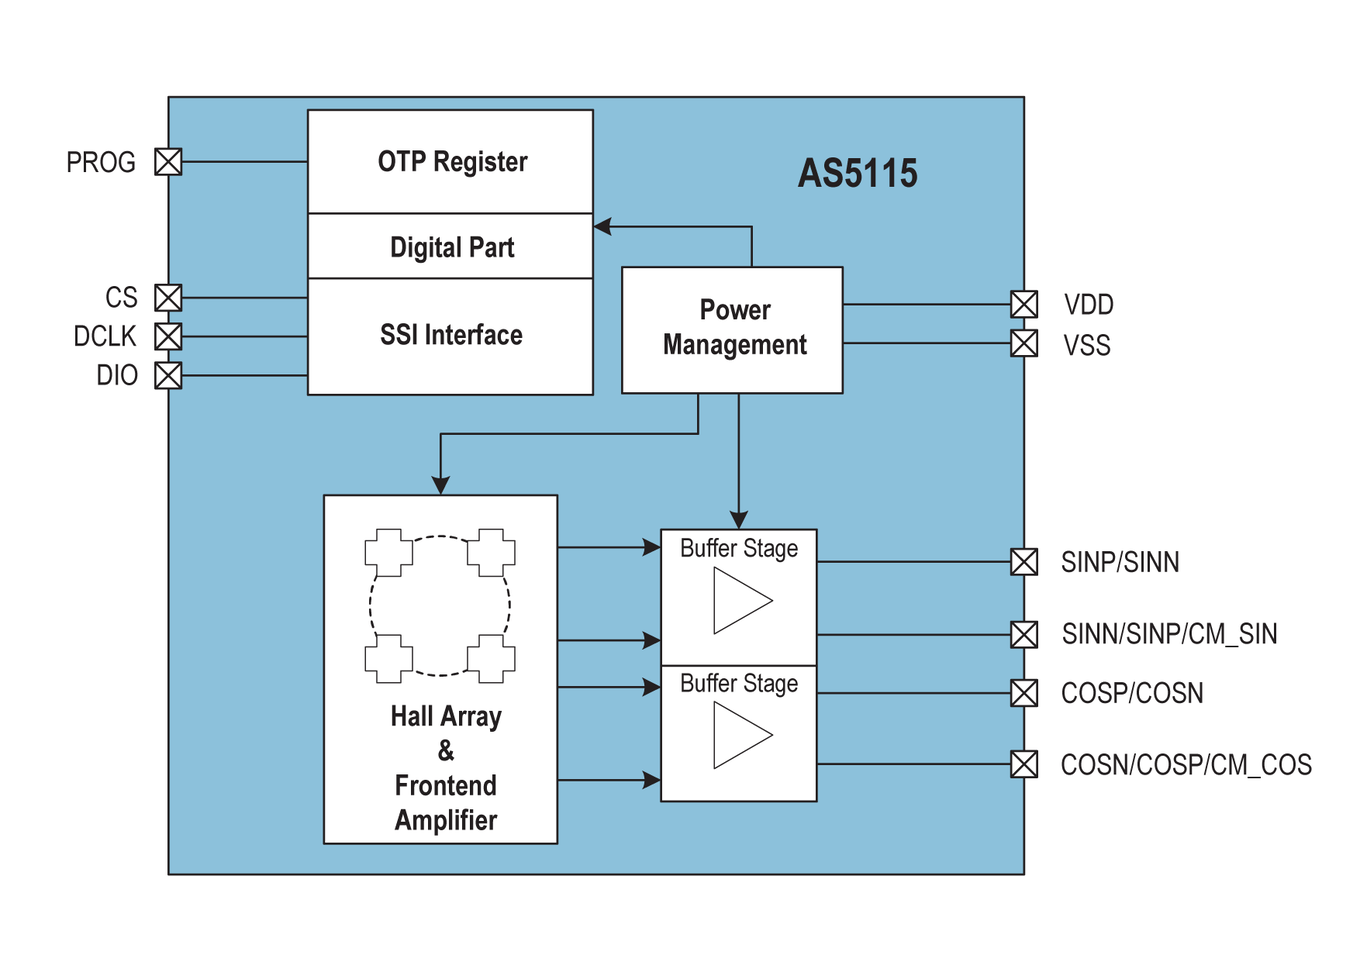 As5115 Fail Safe Sine And Cosine Rotary Position Sensor Ams 360 Degree Camera Block Diagram Pictures This Product Suits For The Following Applications